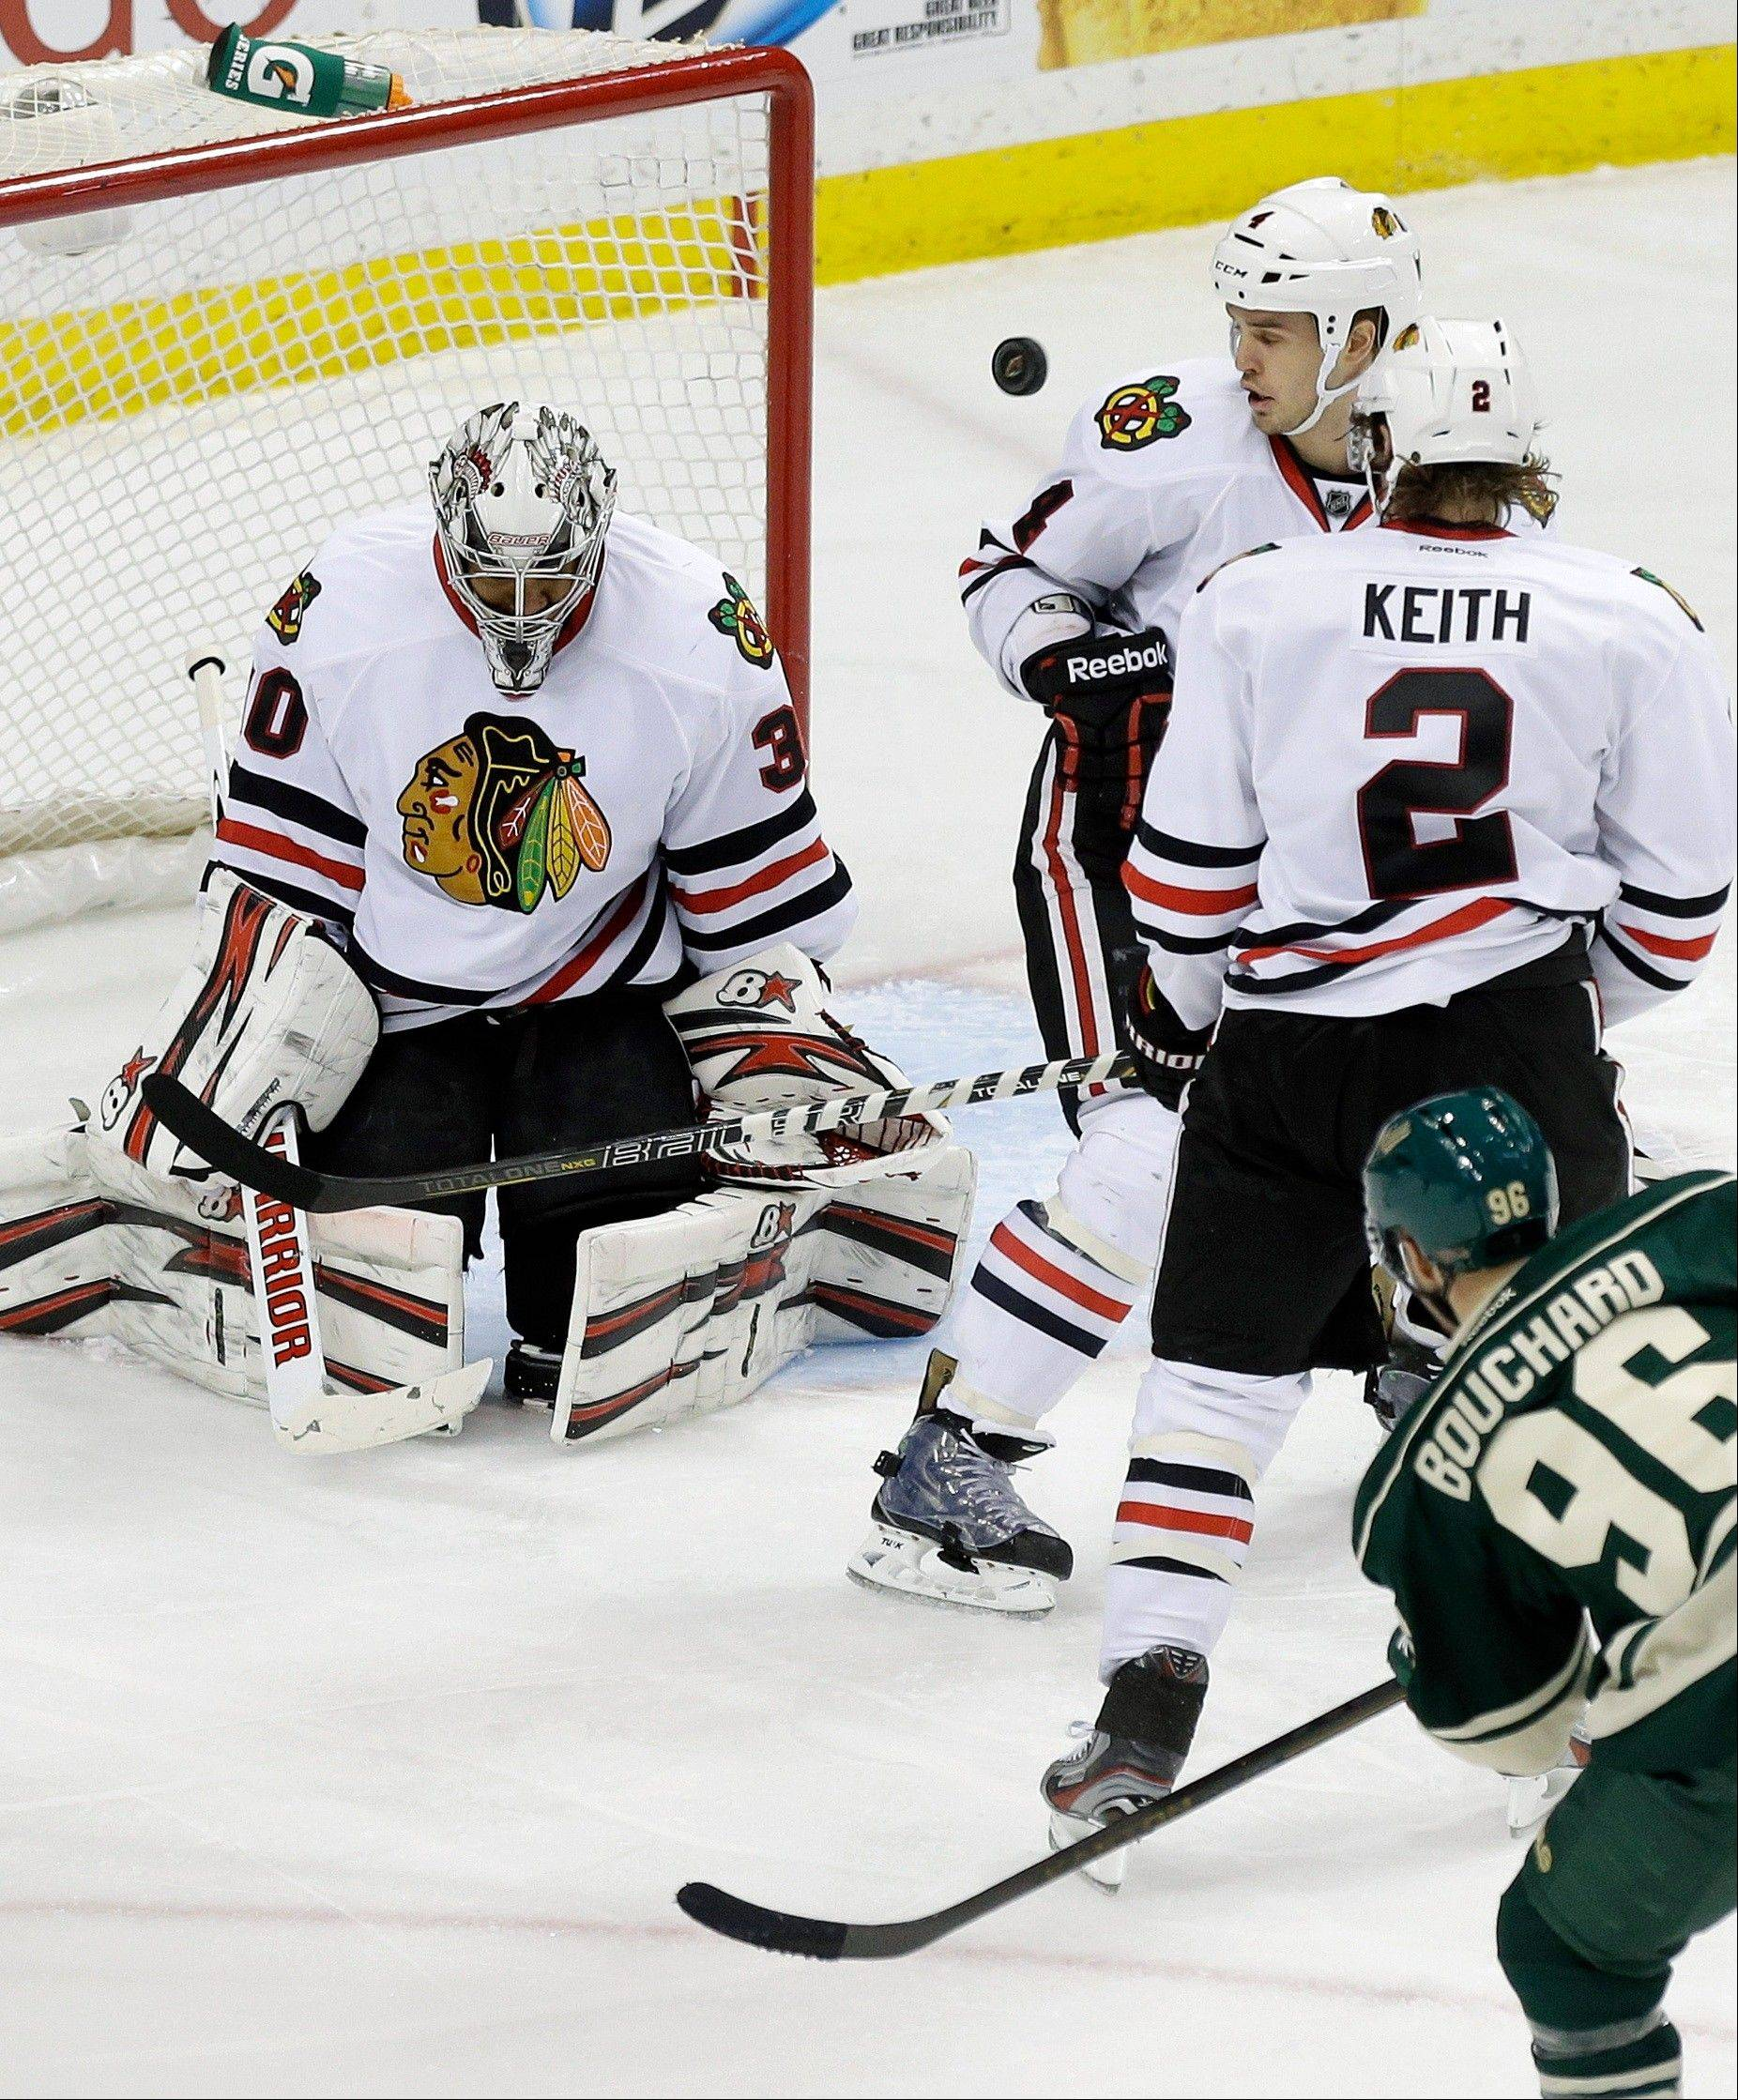 Ray Emery, left, deflects a shot by Minnesota Wild's Pierre-Marc Bouchard, right, as Blackhawks' Duncan Keith (2) and Niklas Hjalmarsson of Sweden watch in the third period of an NHL hockey game Tuesday, April 9, 2013 in St. Paul. The Blackhawks won 1-0.